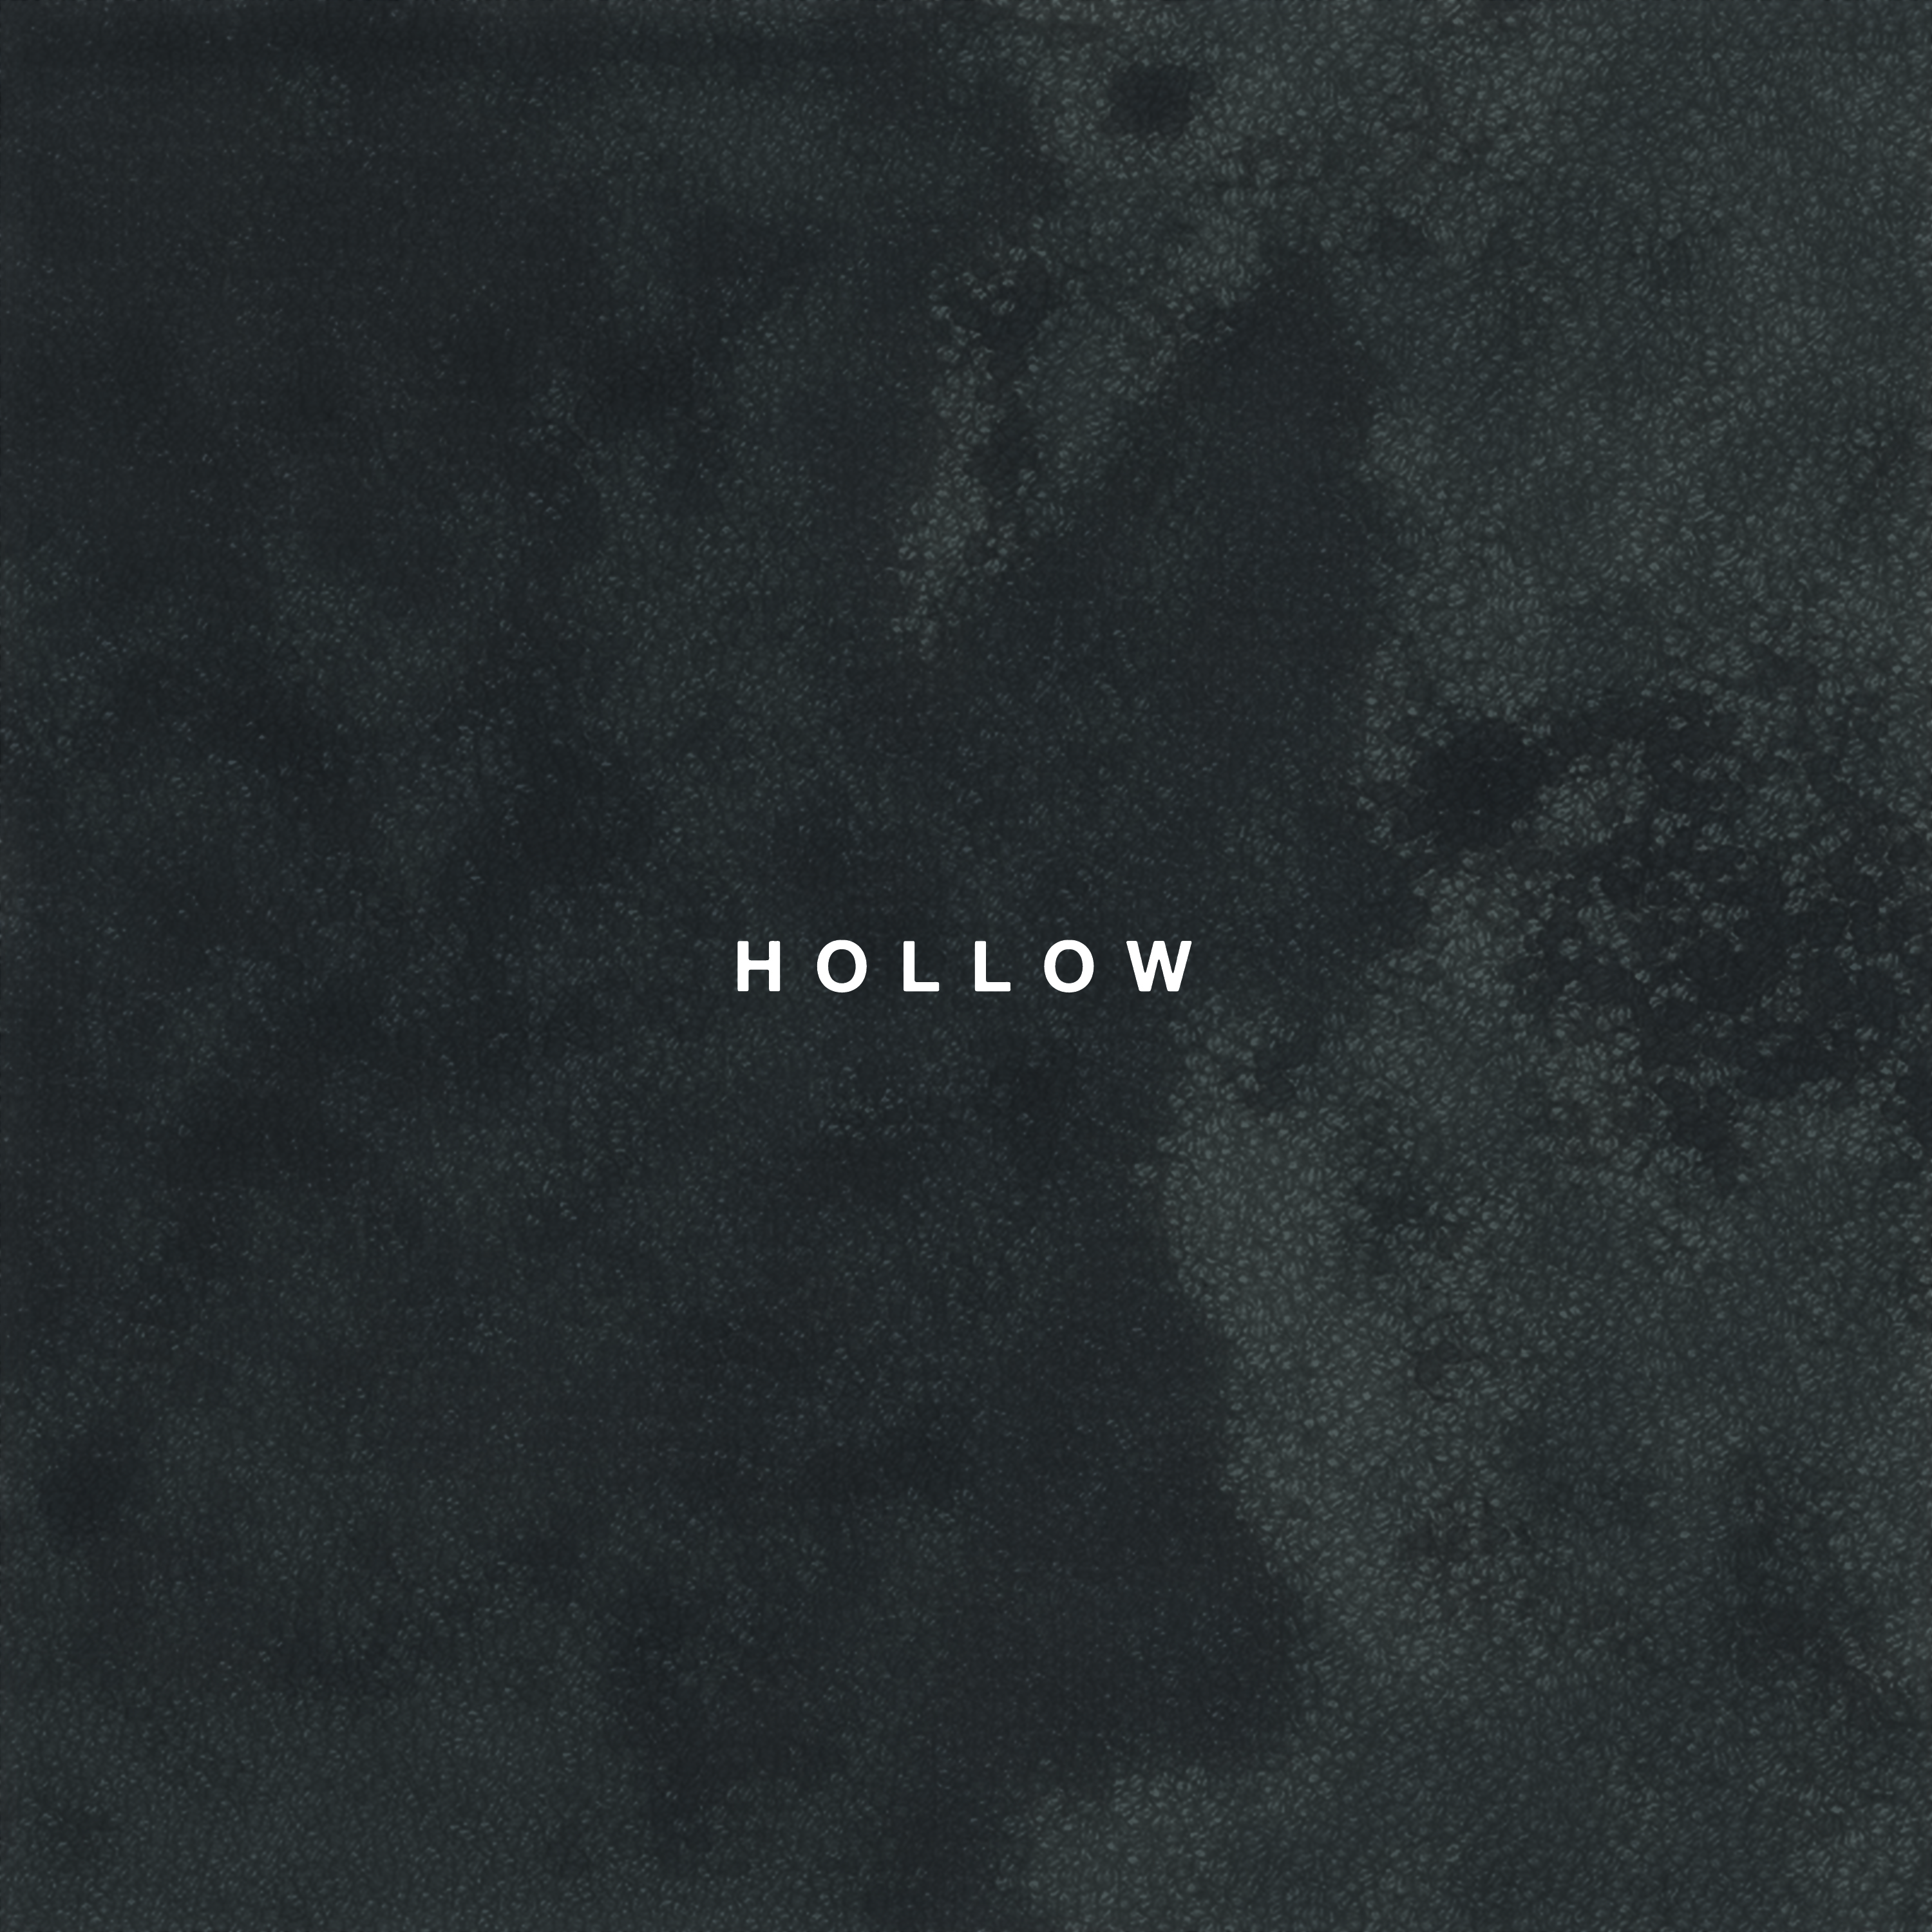 Hollow - Desperate Journalist